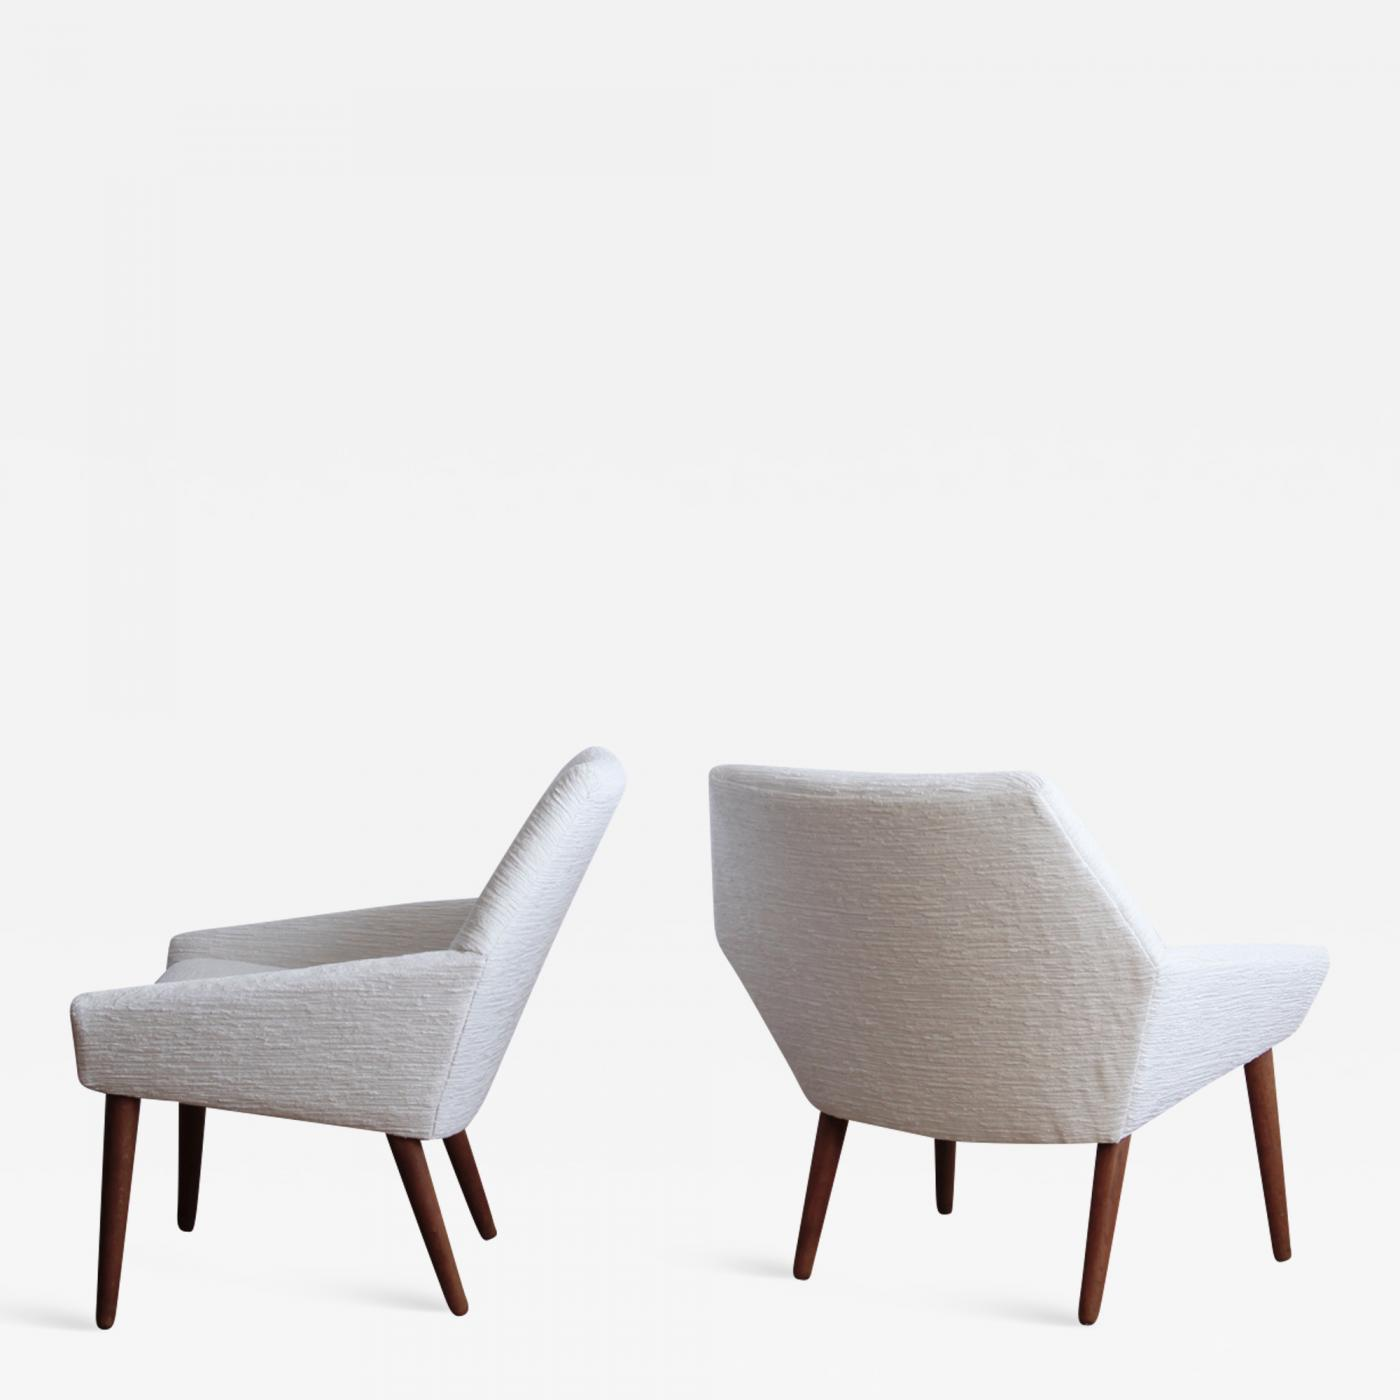 Pair Of Danish Modern Lounge Chairs By Poul Thorsbjerg Jensen For PMJ